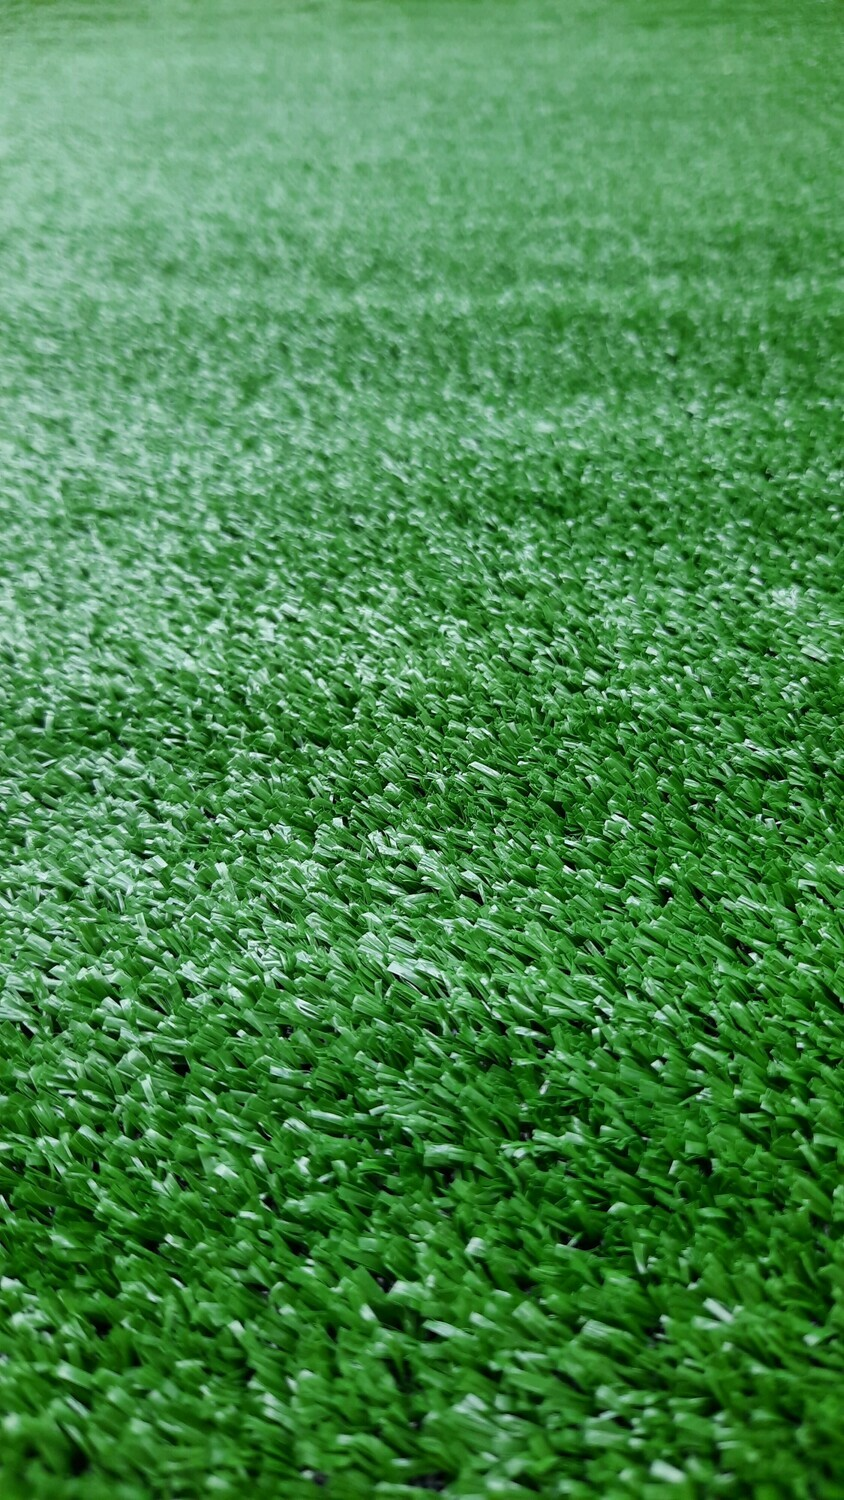 Synsport Eco Offcuts (Artificial Grass) 2m x 1m